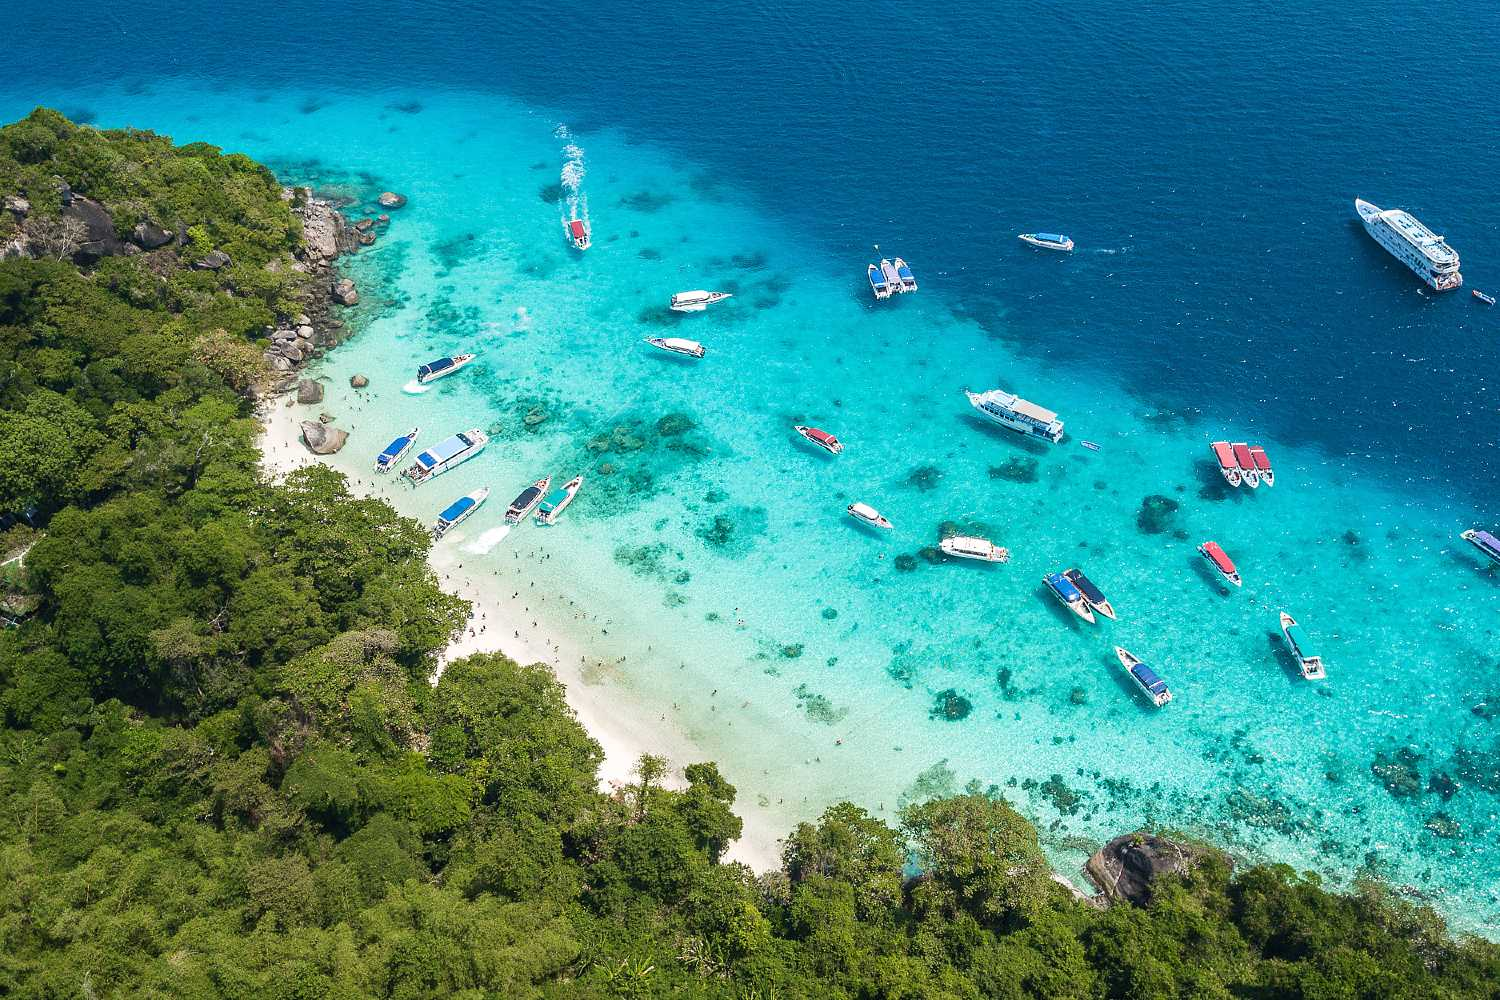 Busy with boats and people at the Similan Islands